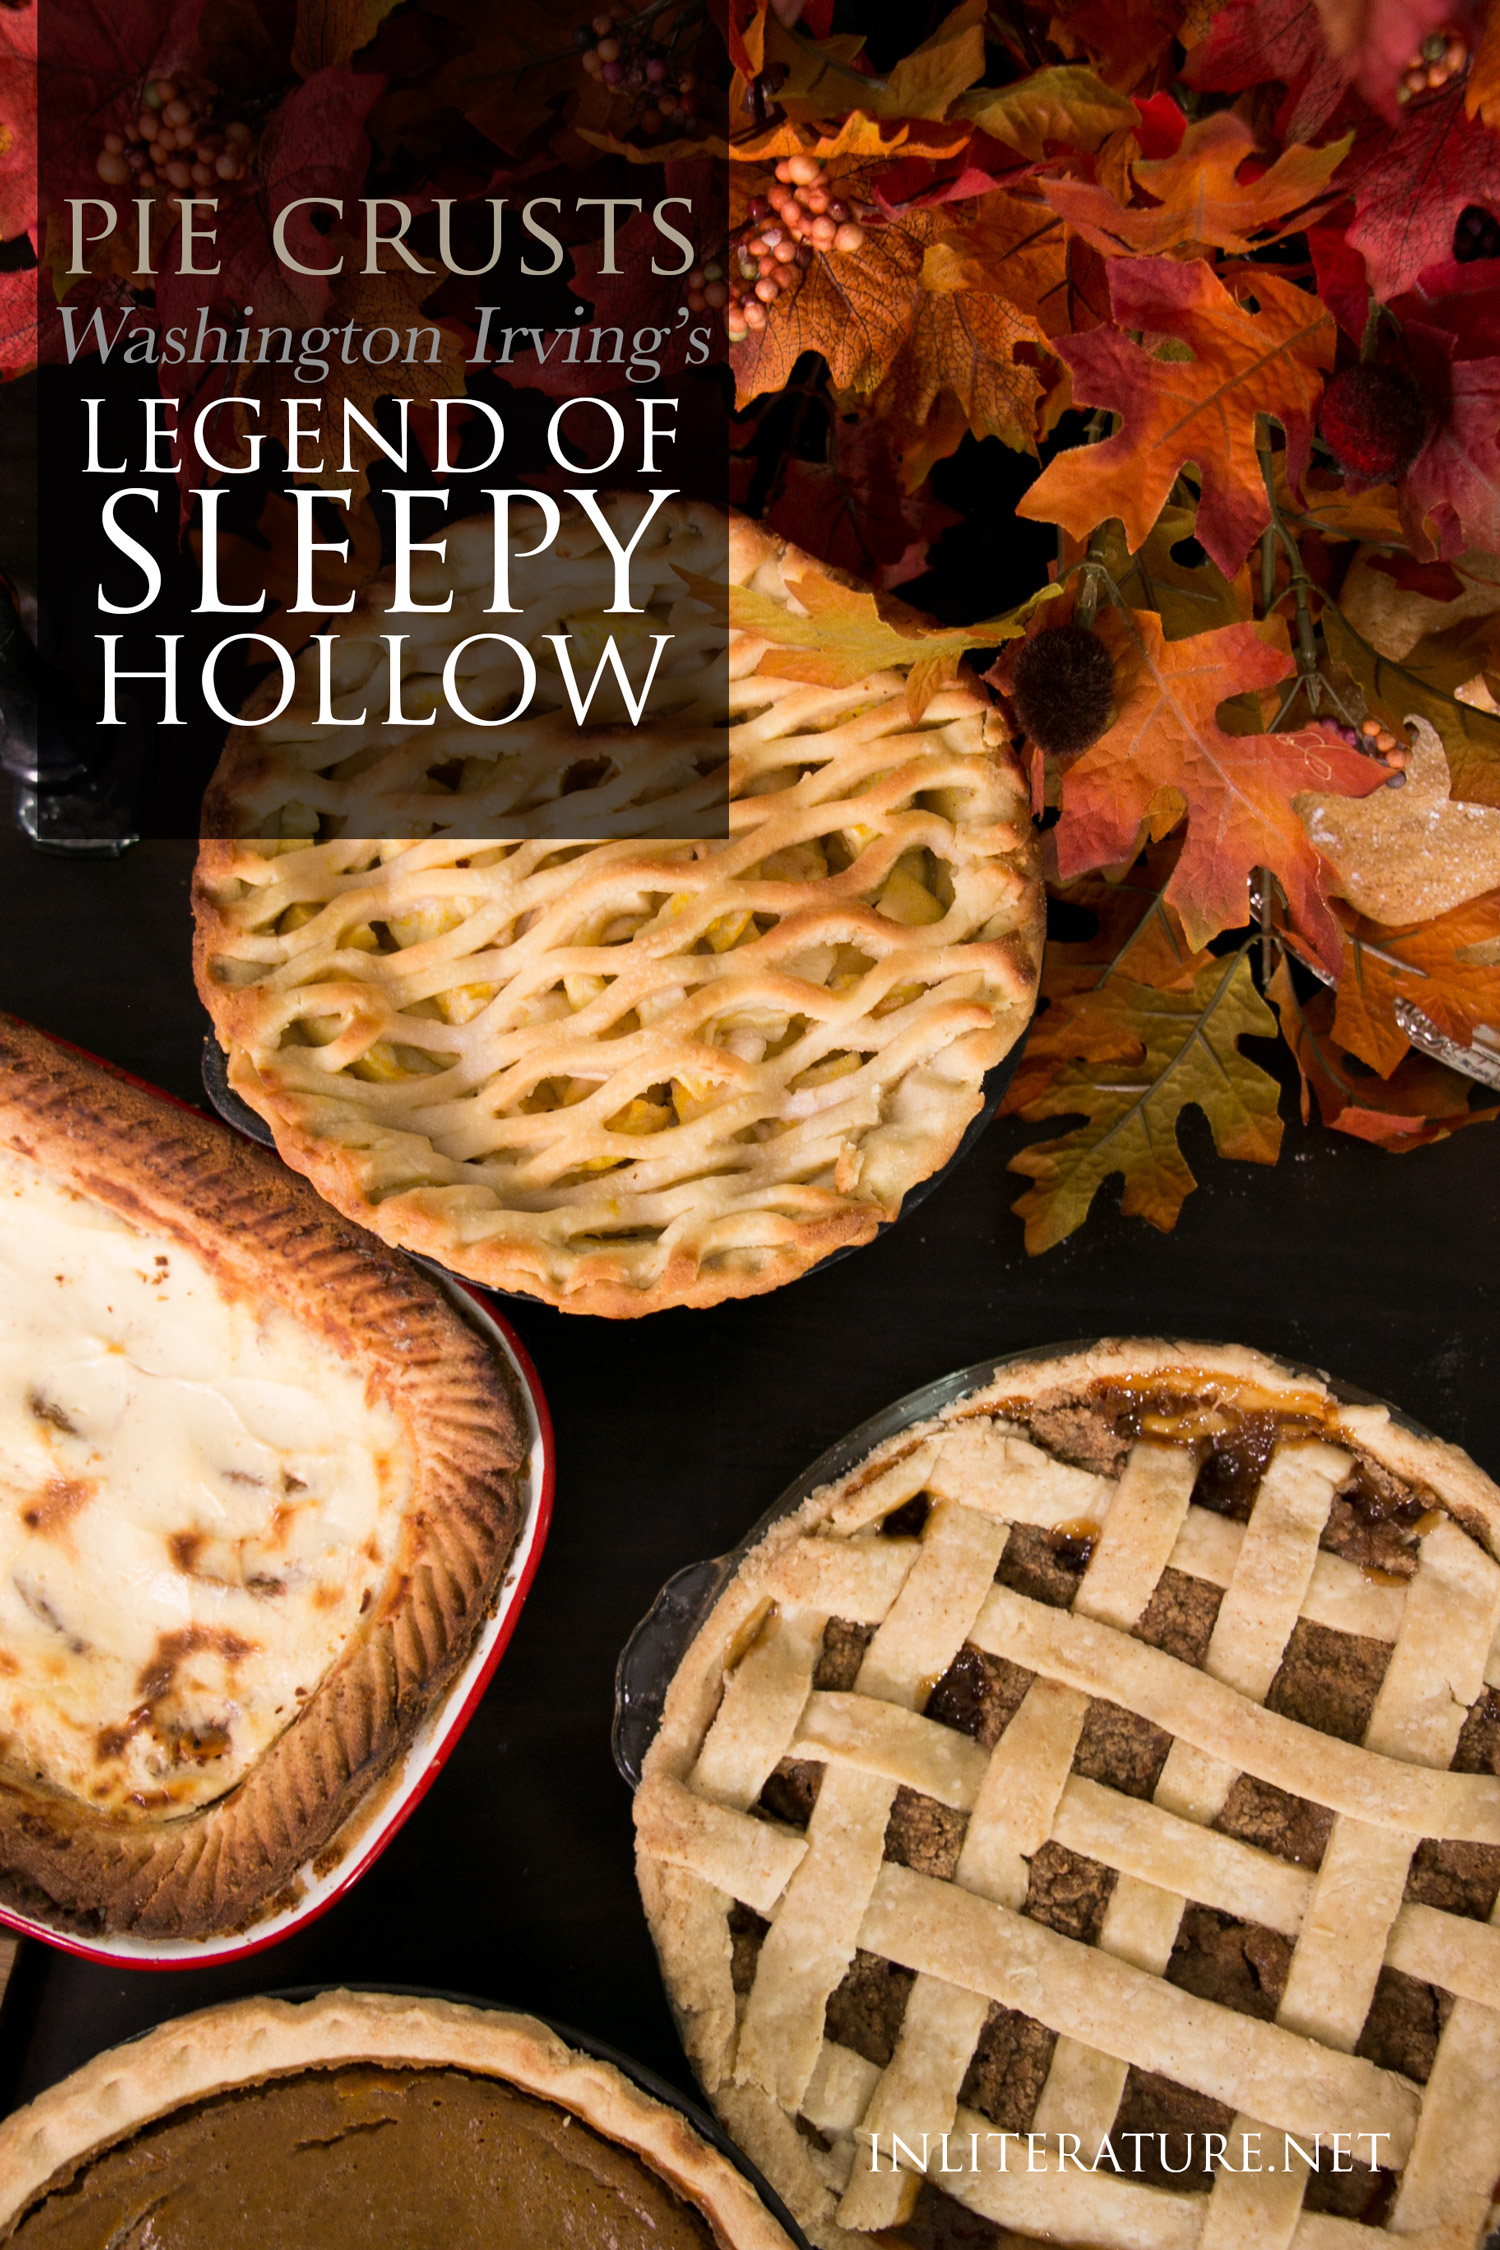 pie-crusts-recipe-washington-irving-sleepy-hollow-party